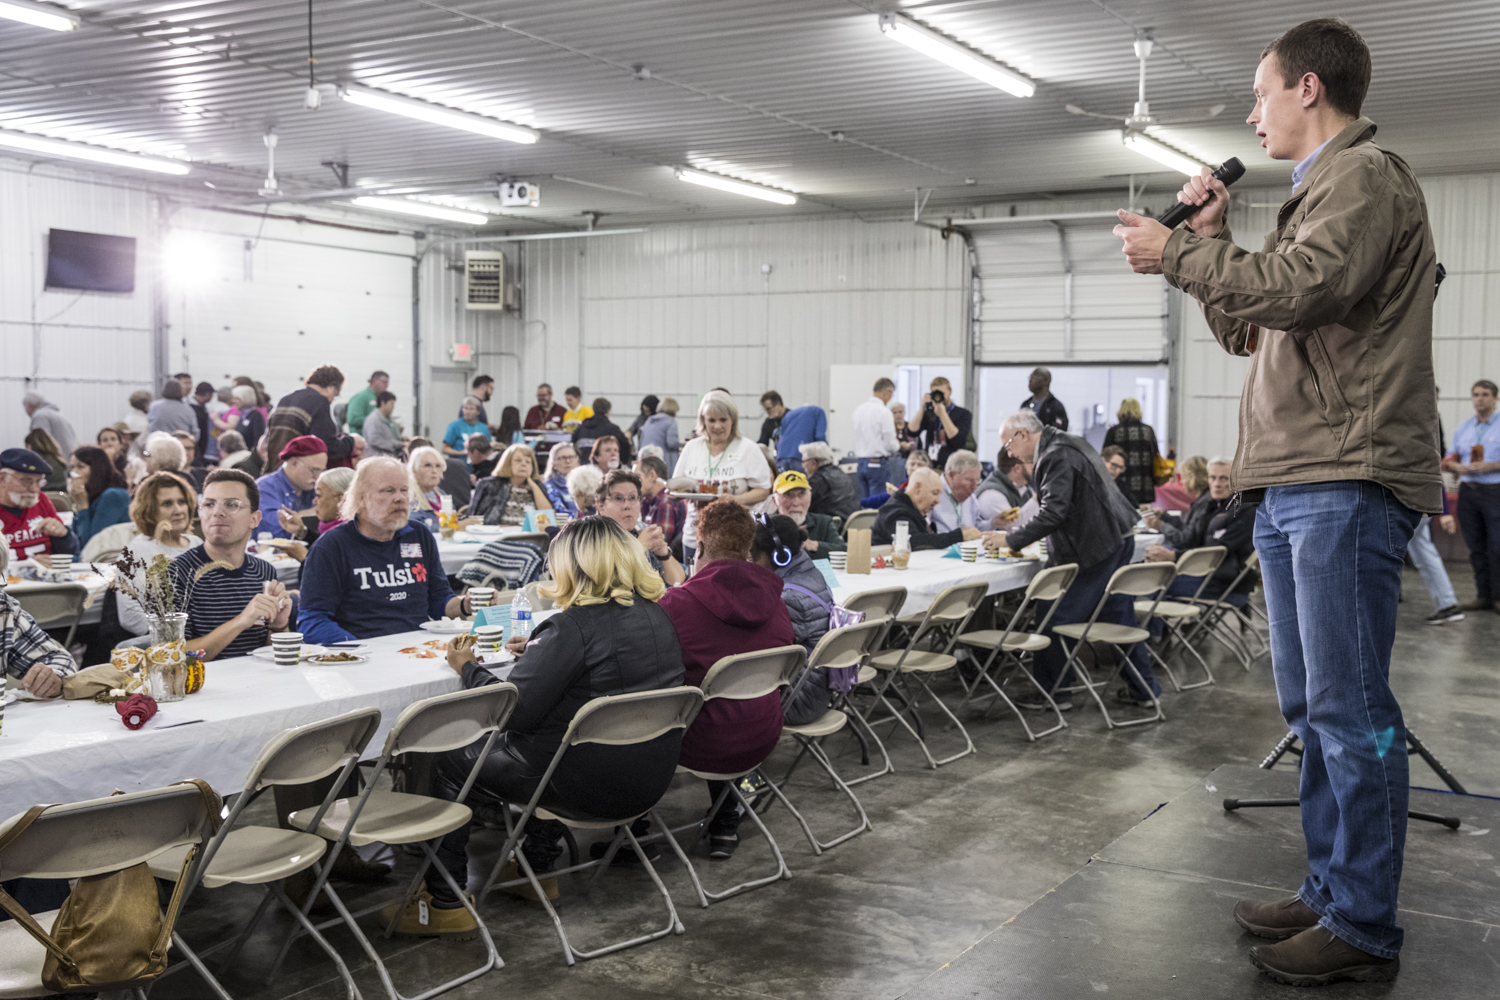 Democratic candidate for Iowa Auditor of State Rob Sand speaks during the Johnson County Democratic Party Fall Barbecue at the Johnson County Fairgrounds on Sunday Oct. 14, 2018.